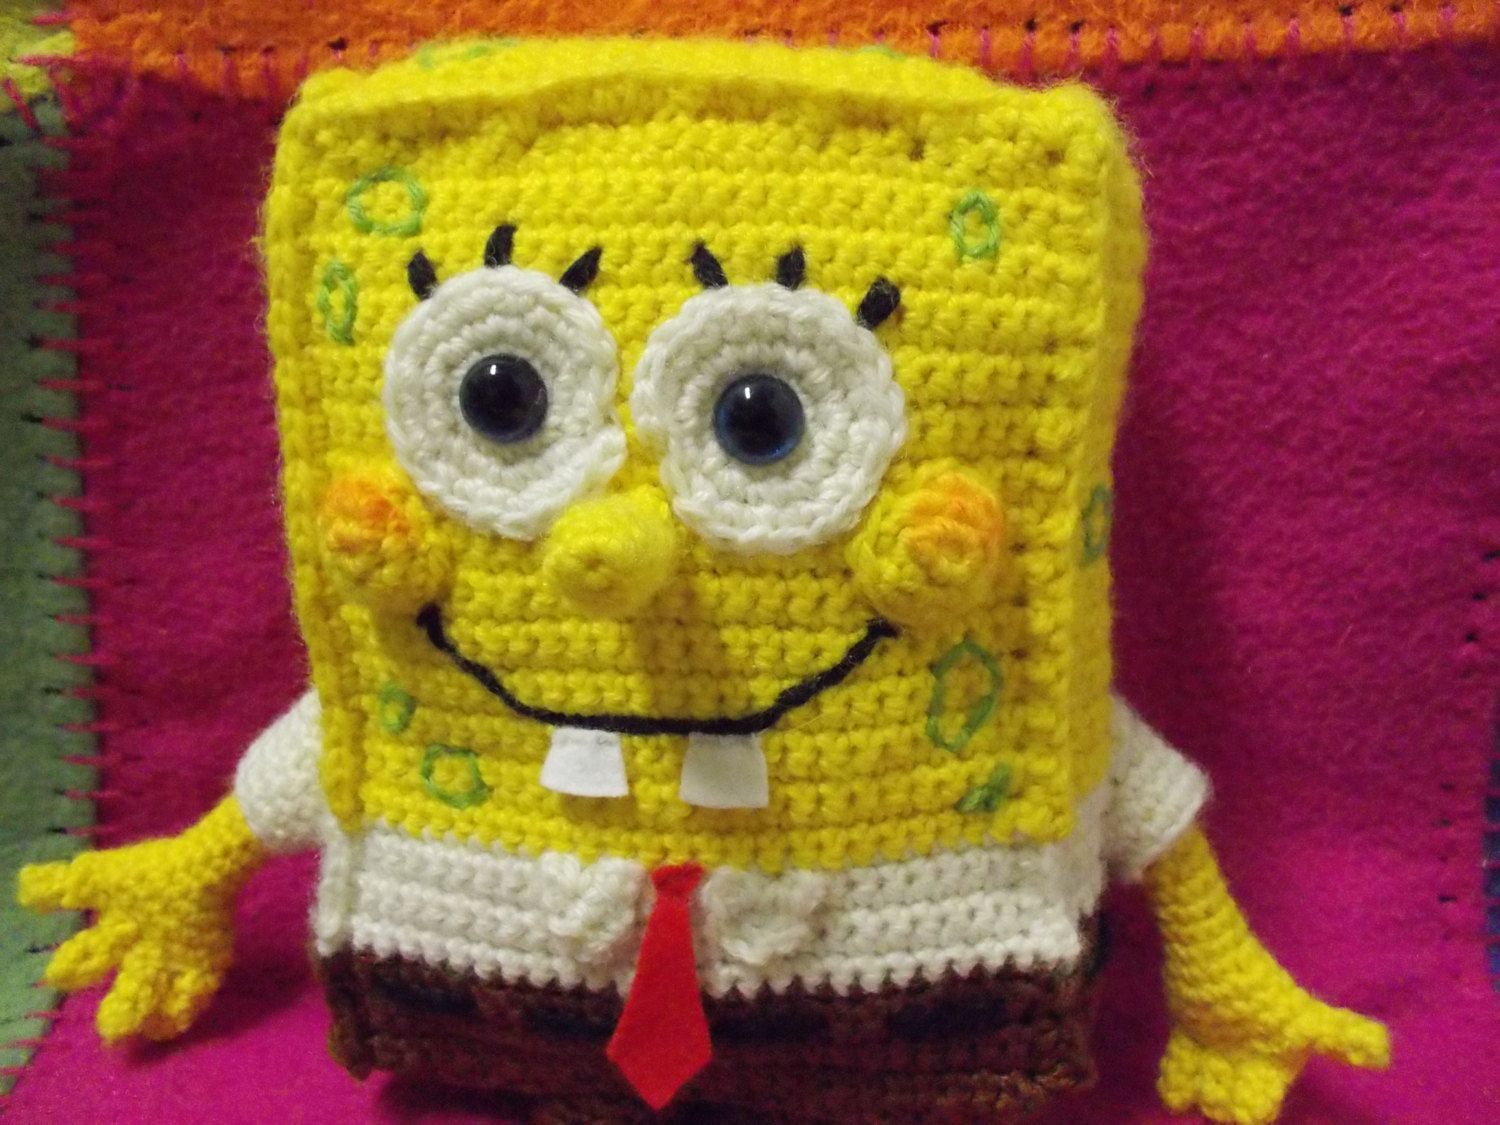 Spongebob squarepants crochet pattern crochet obsessed spongebob squarepants crochet pattern bankloansurffo Image collections